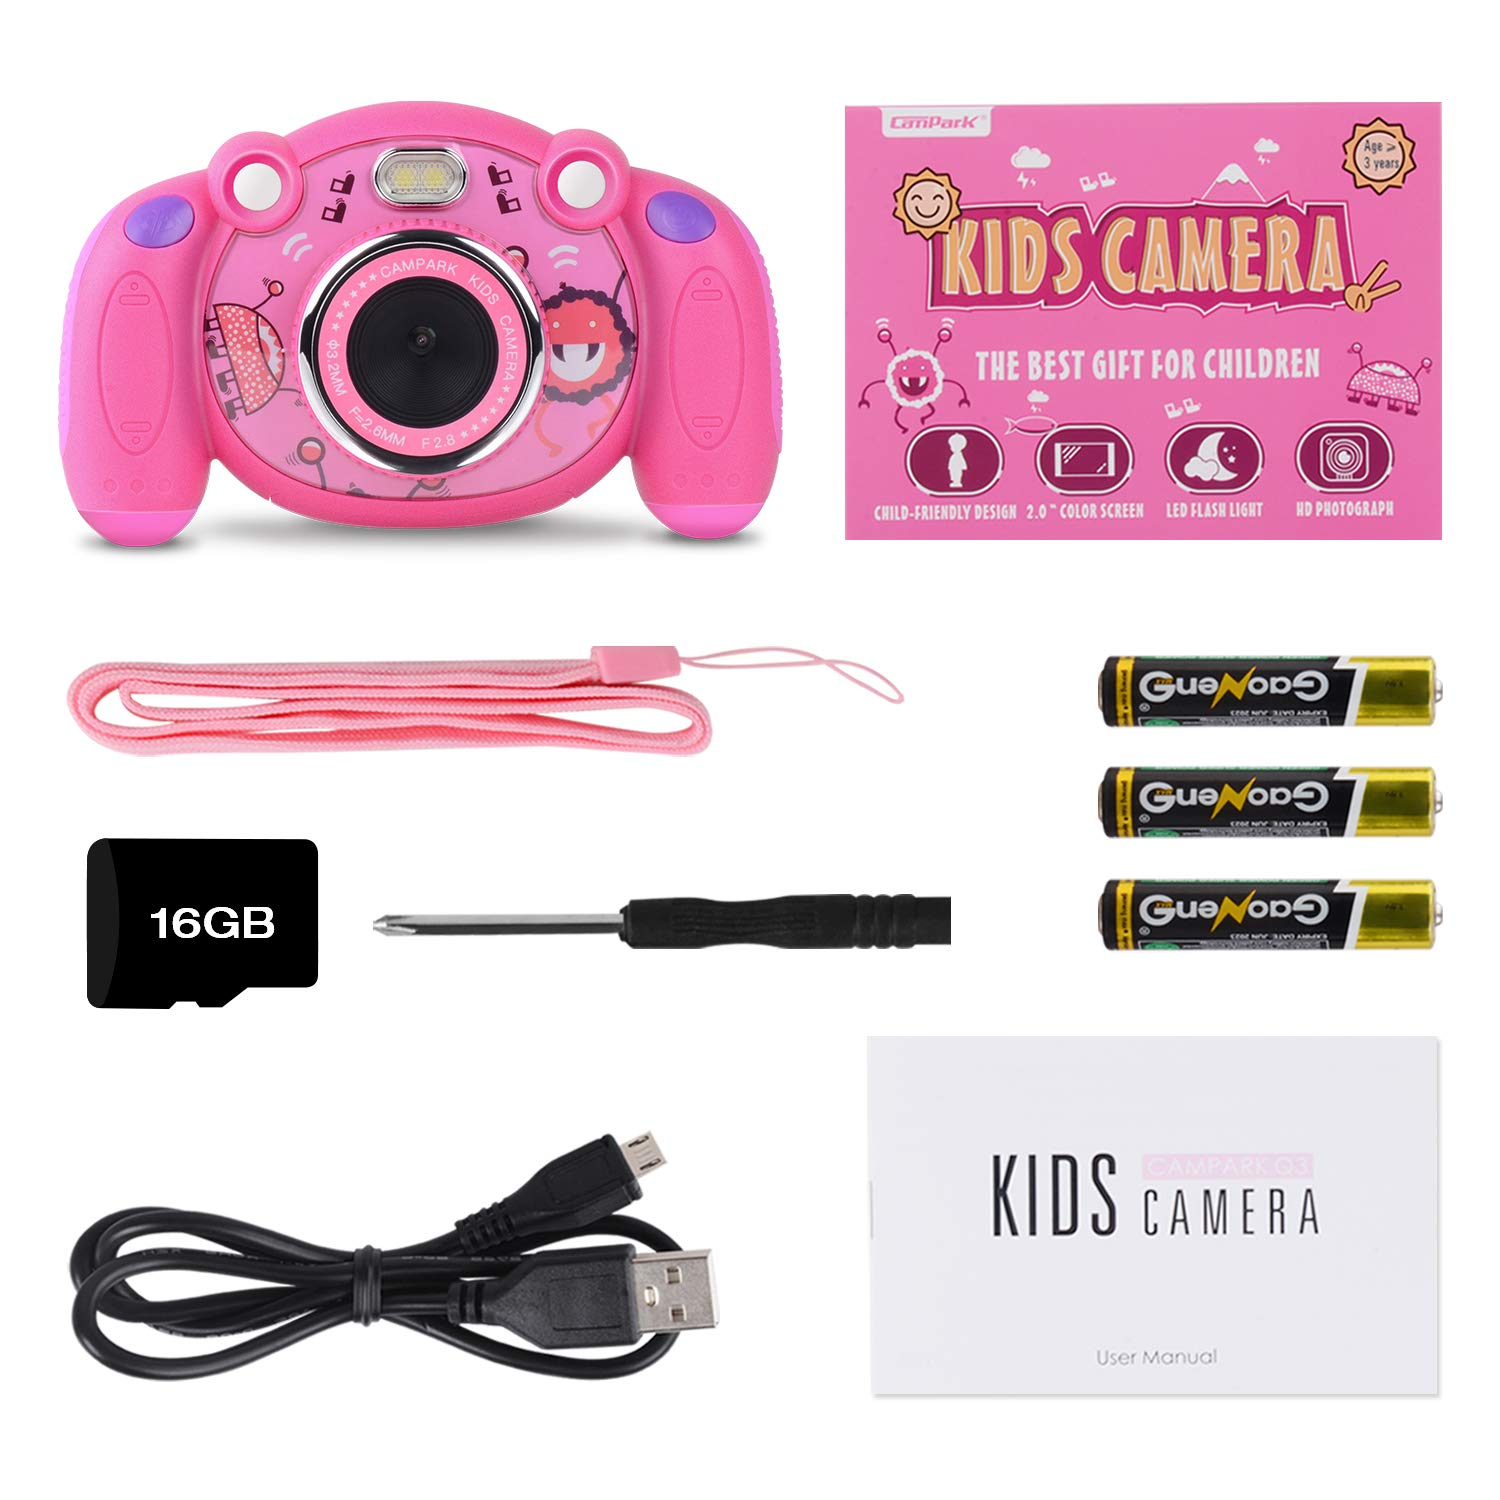 Campark Kids Camera, Mini Child Camcorder with HD LCD Display 16GB Memory Card for Girls Pink Great Birthday Gift by Campark (Image #7)